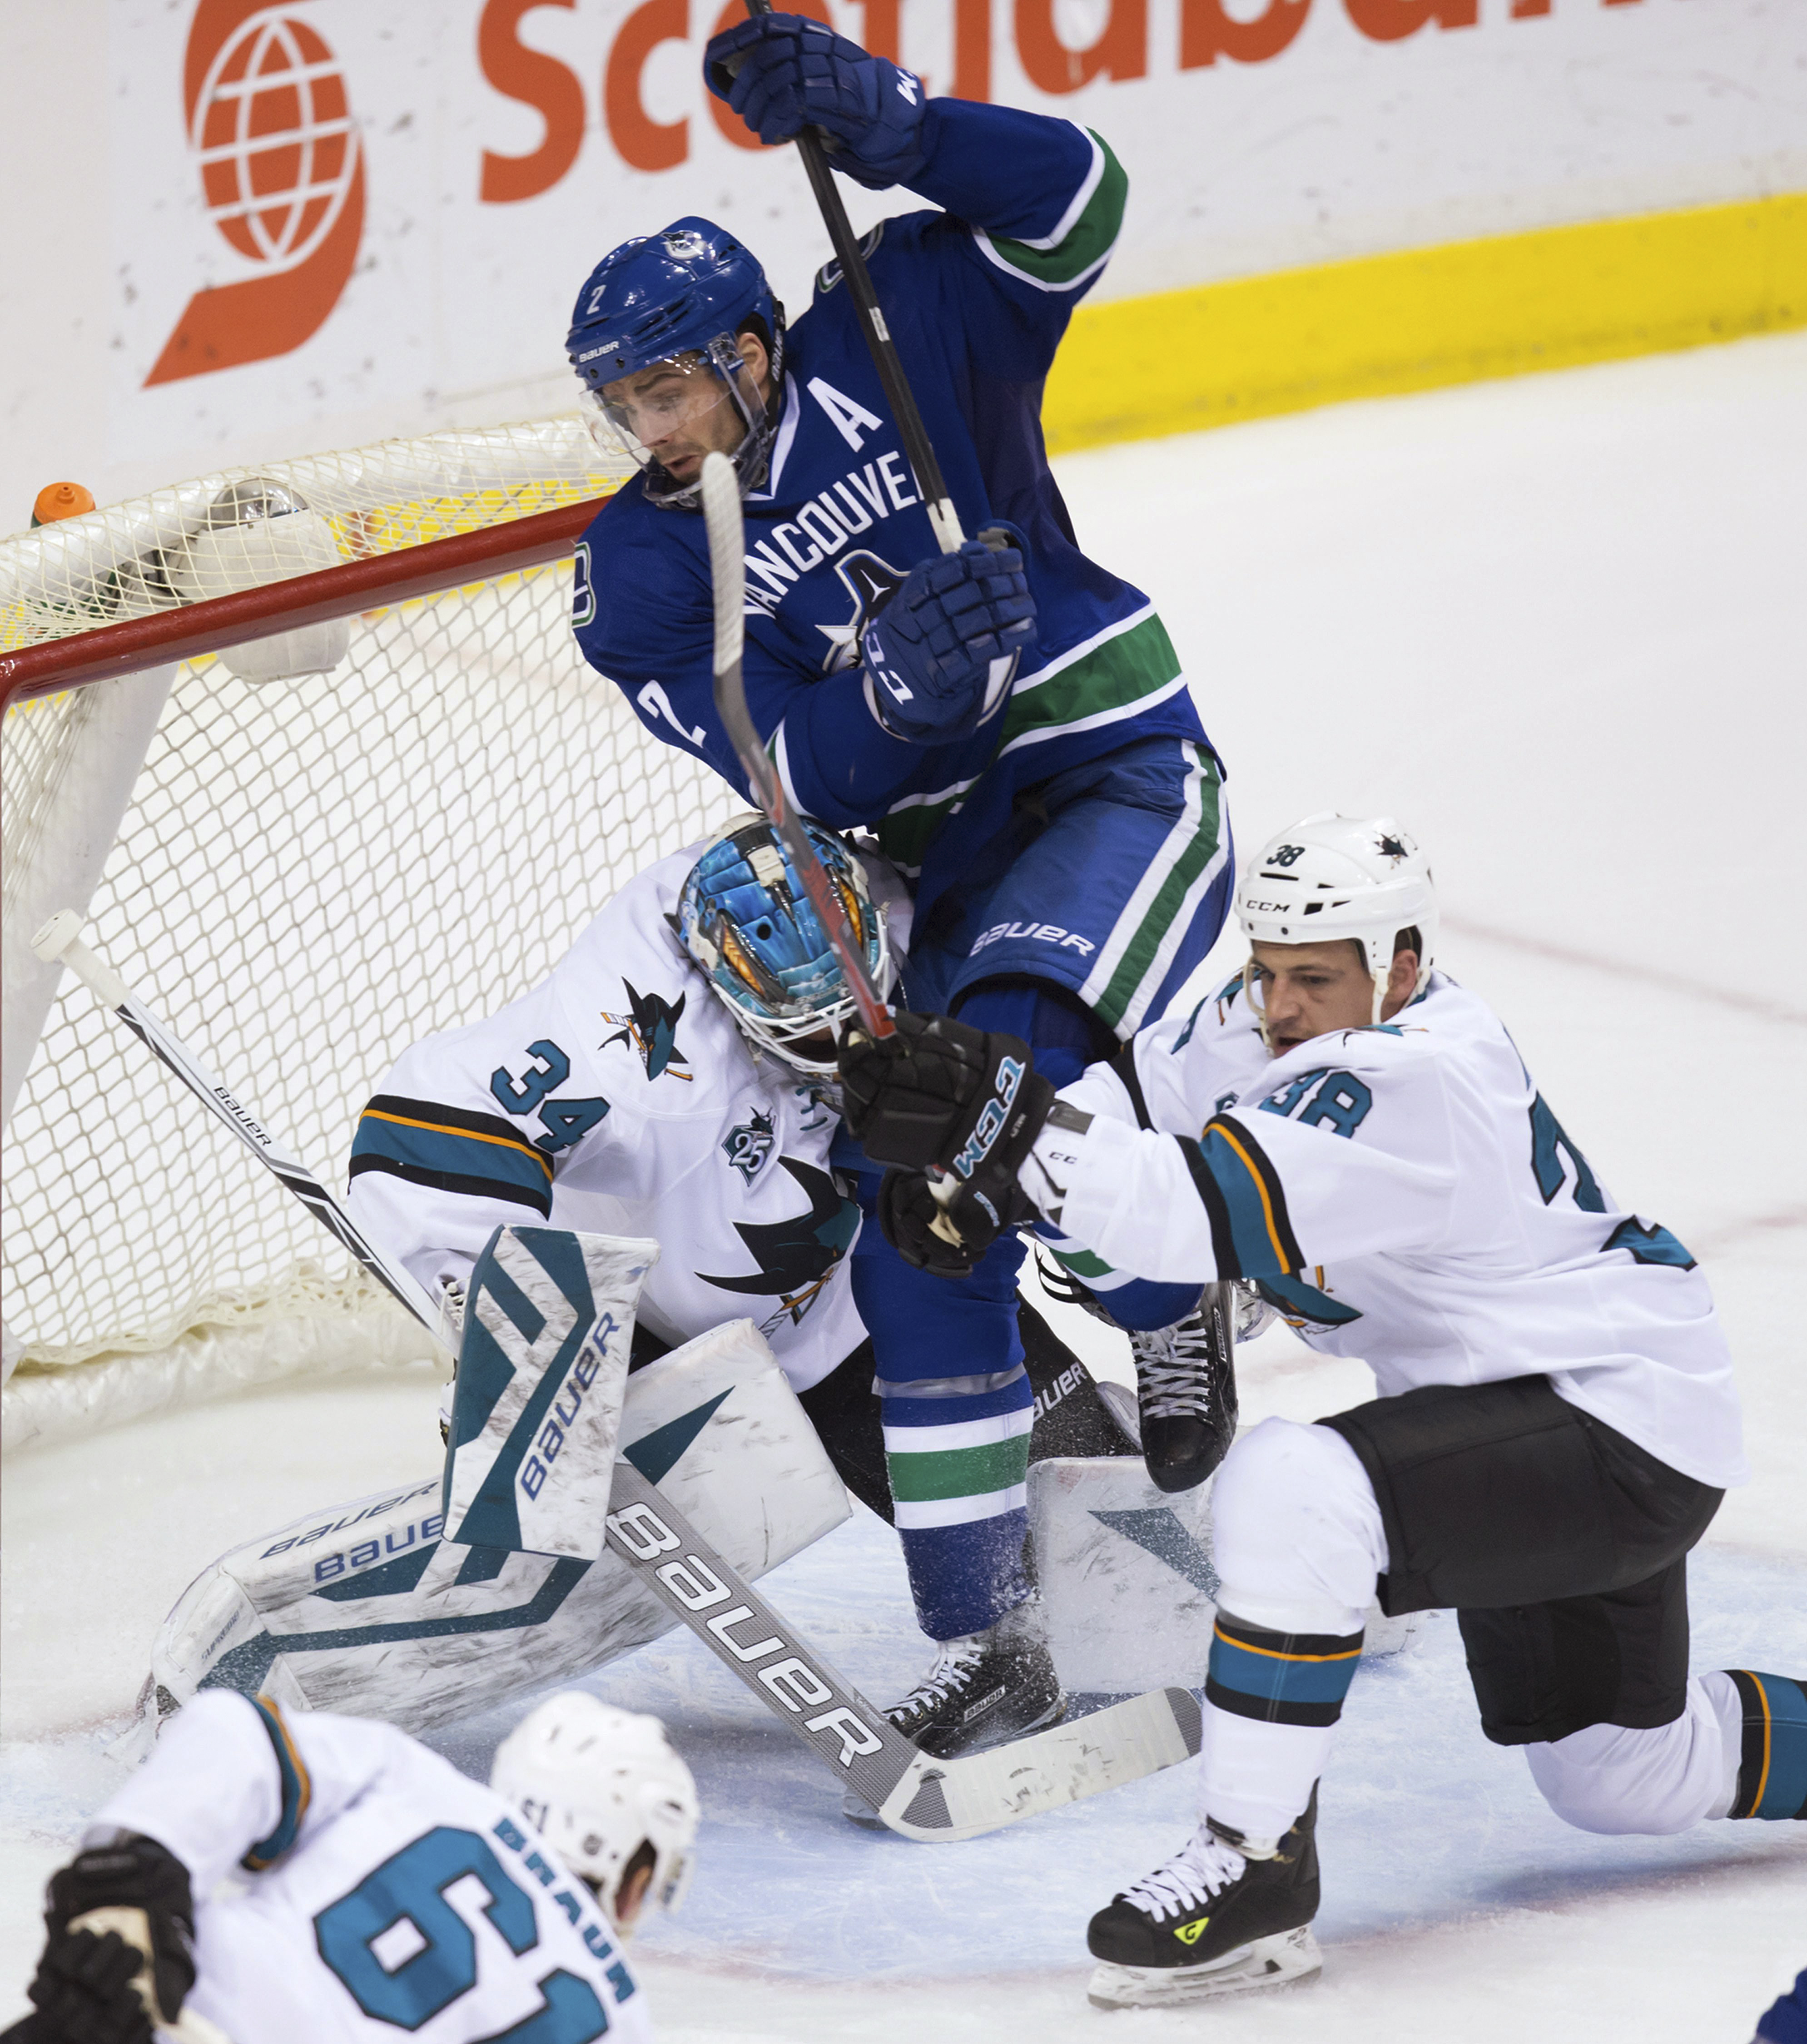 Vancouver Canucks' Dan Hamhuis, center, is checked into San Jose Sharks goalie James Reimer by Michael Haley, right, during the third period of an NHL hockey game Tuesday, March 29, 2016, in Vancouver, British Columbia. (Darryl Dyck/The Canadian Press via